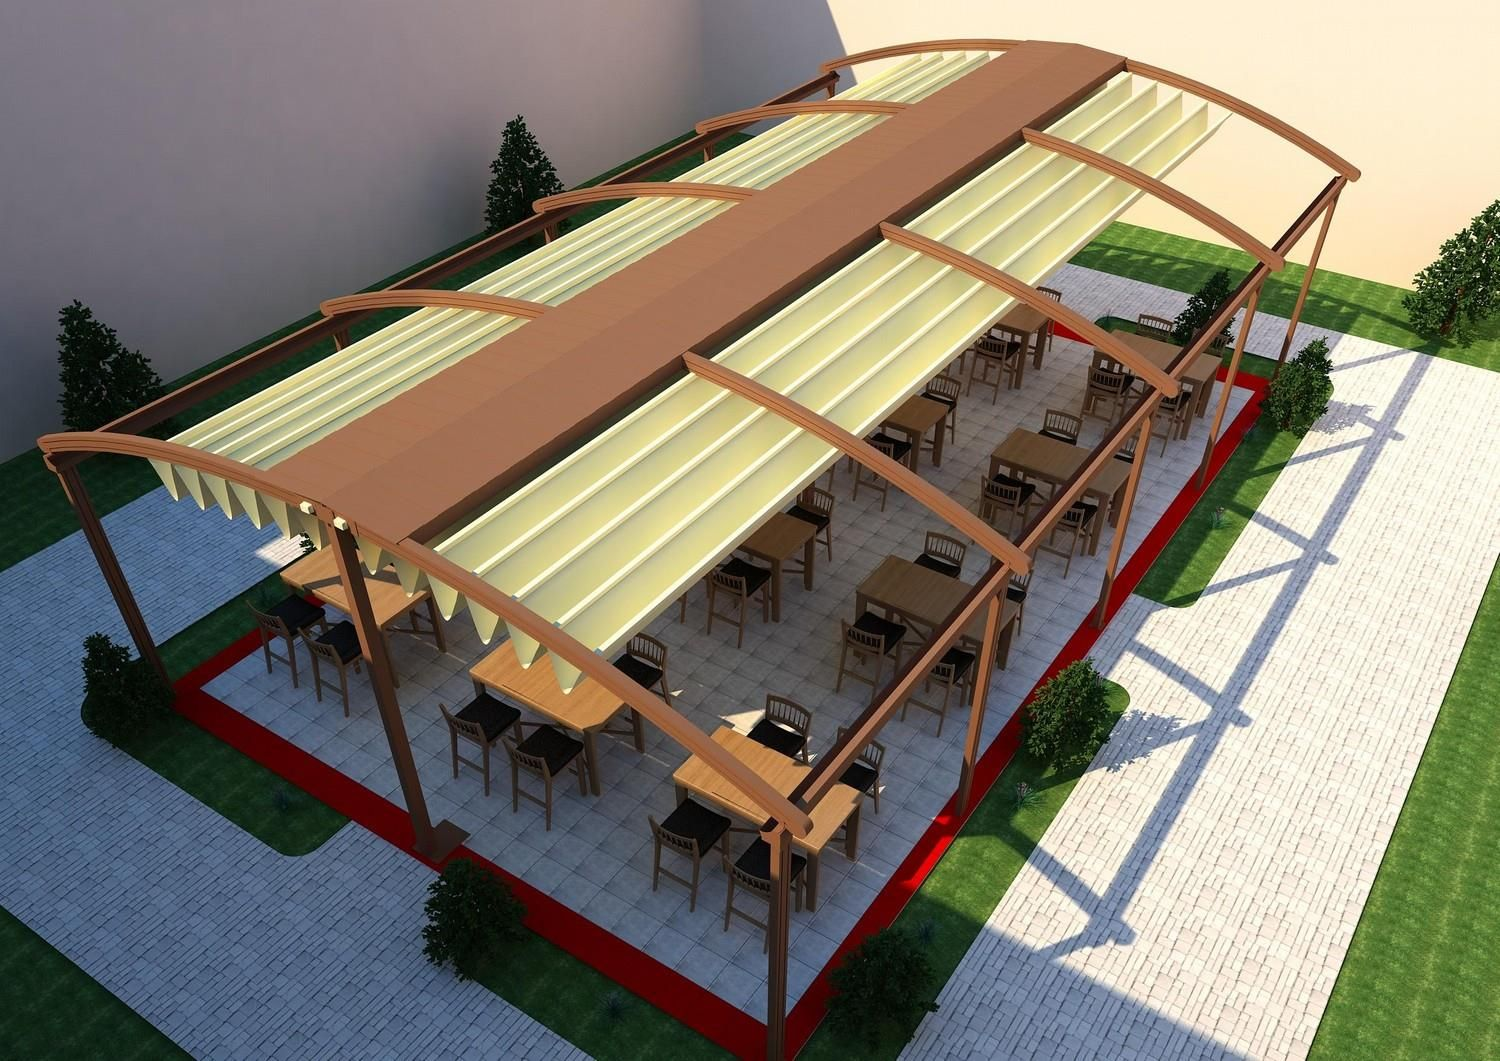 Pin By Alpha Canvas And Awning On Corradi Outdoor Living Space Pergola Outdoor Living Space Shade Structure